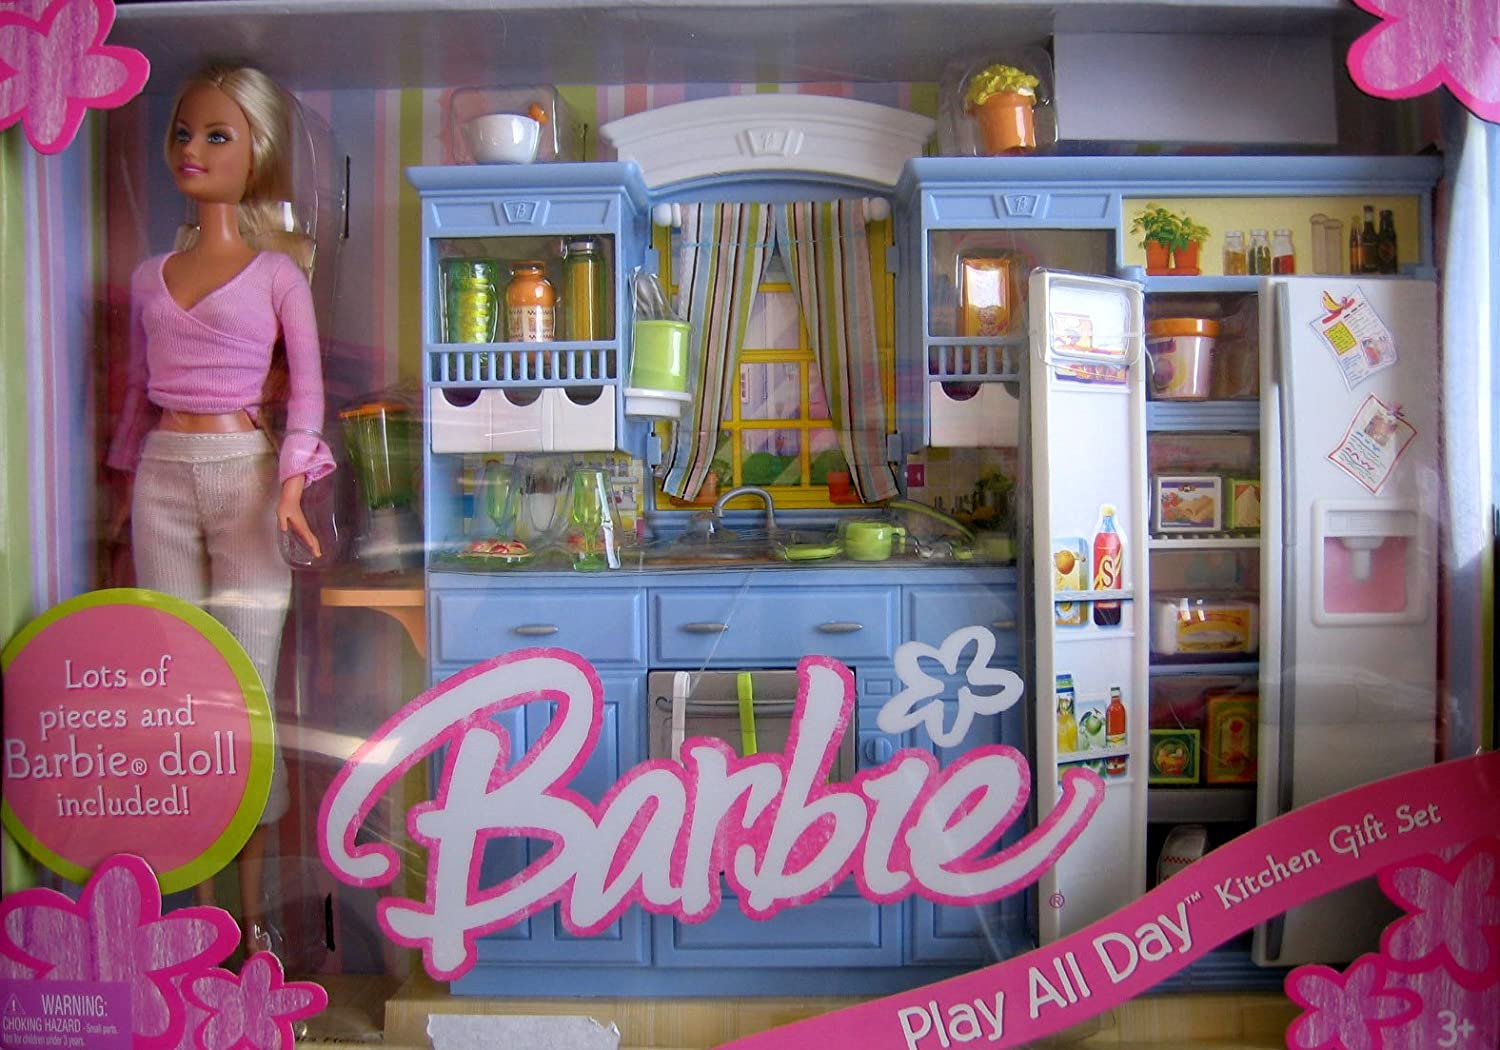 Amazon Com Barbie Play All Day Kitchen Gift Set W Barbie Doll 2005 Toys Games